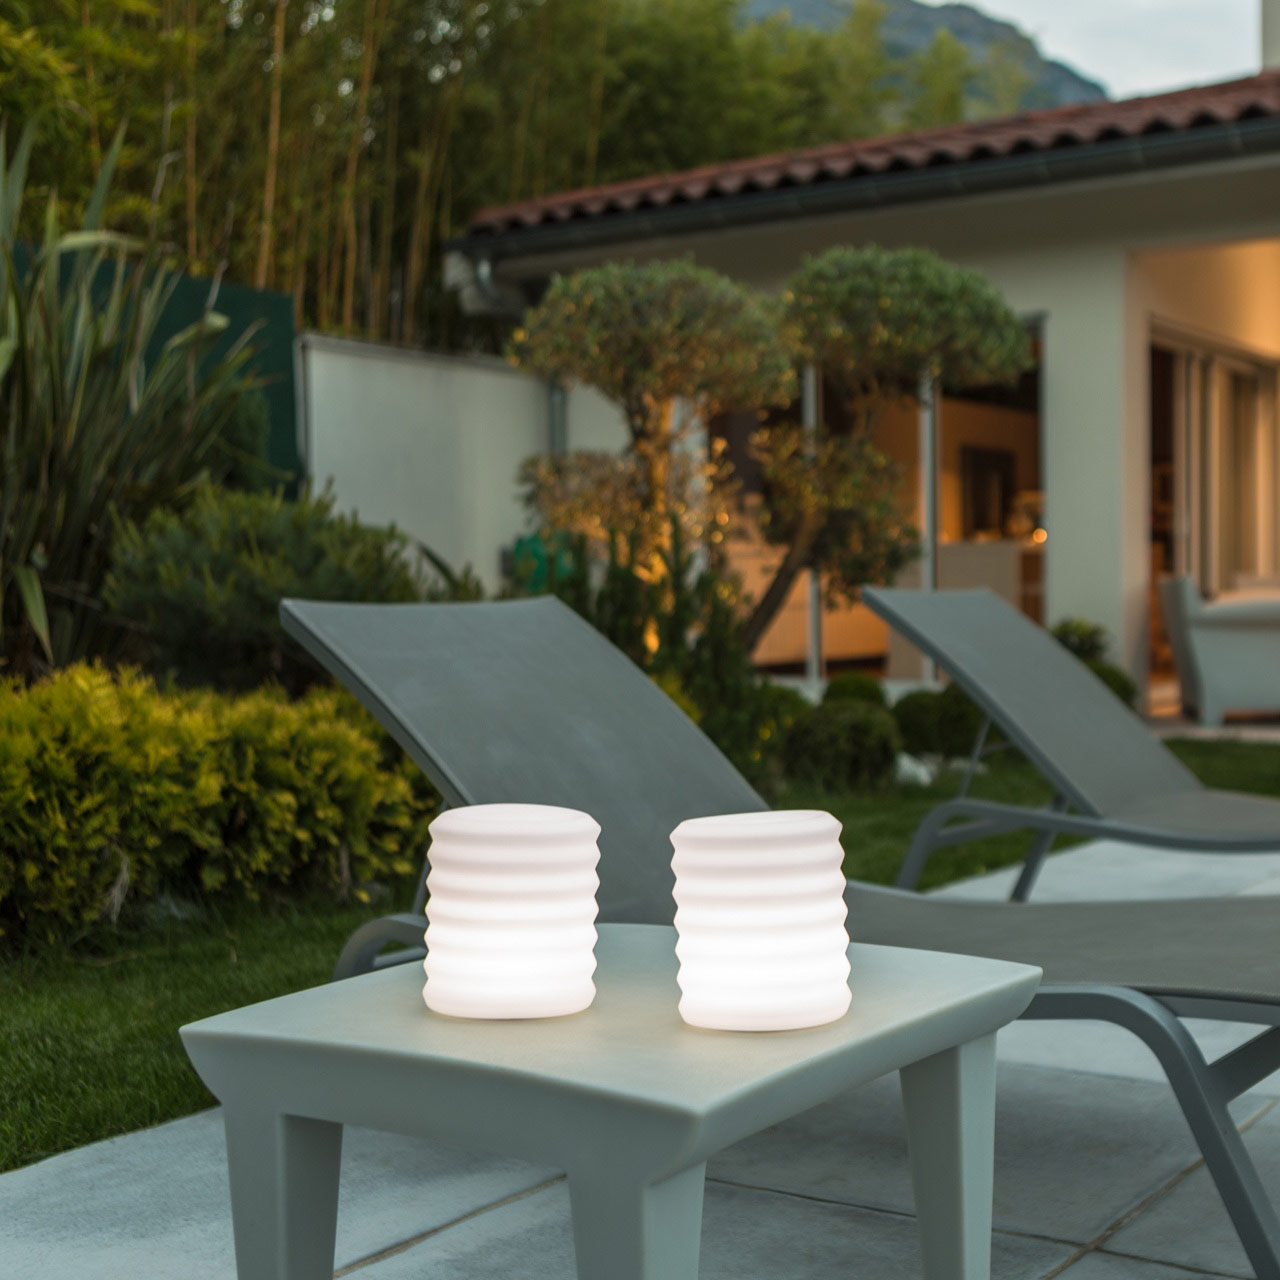 Lampionnen Met Led Lampion Bluetooth Outdoor Indoor Led Lamp By Smart Green Sg Lampion